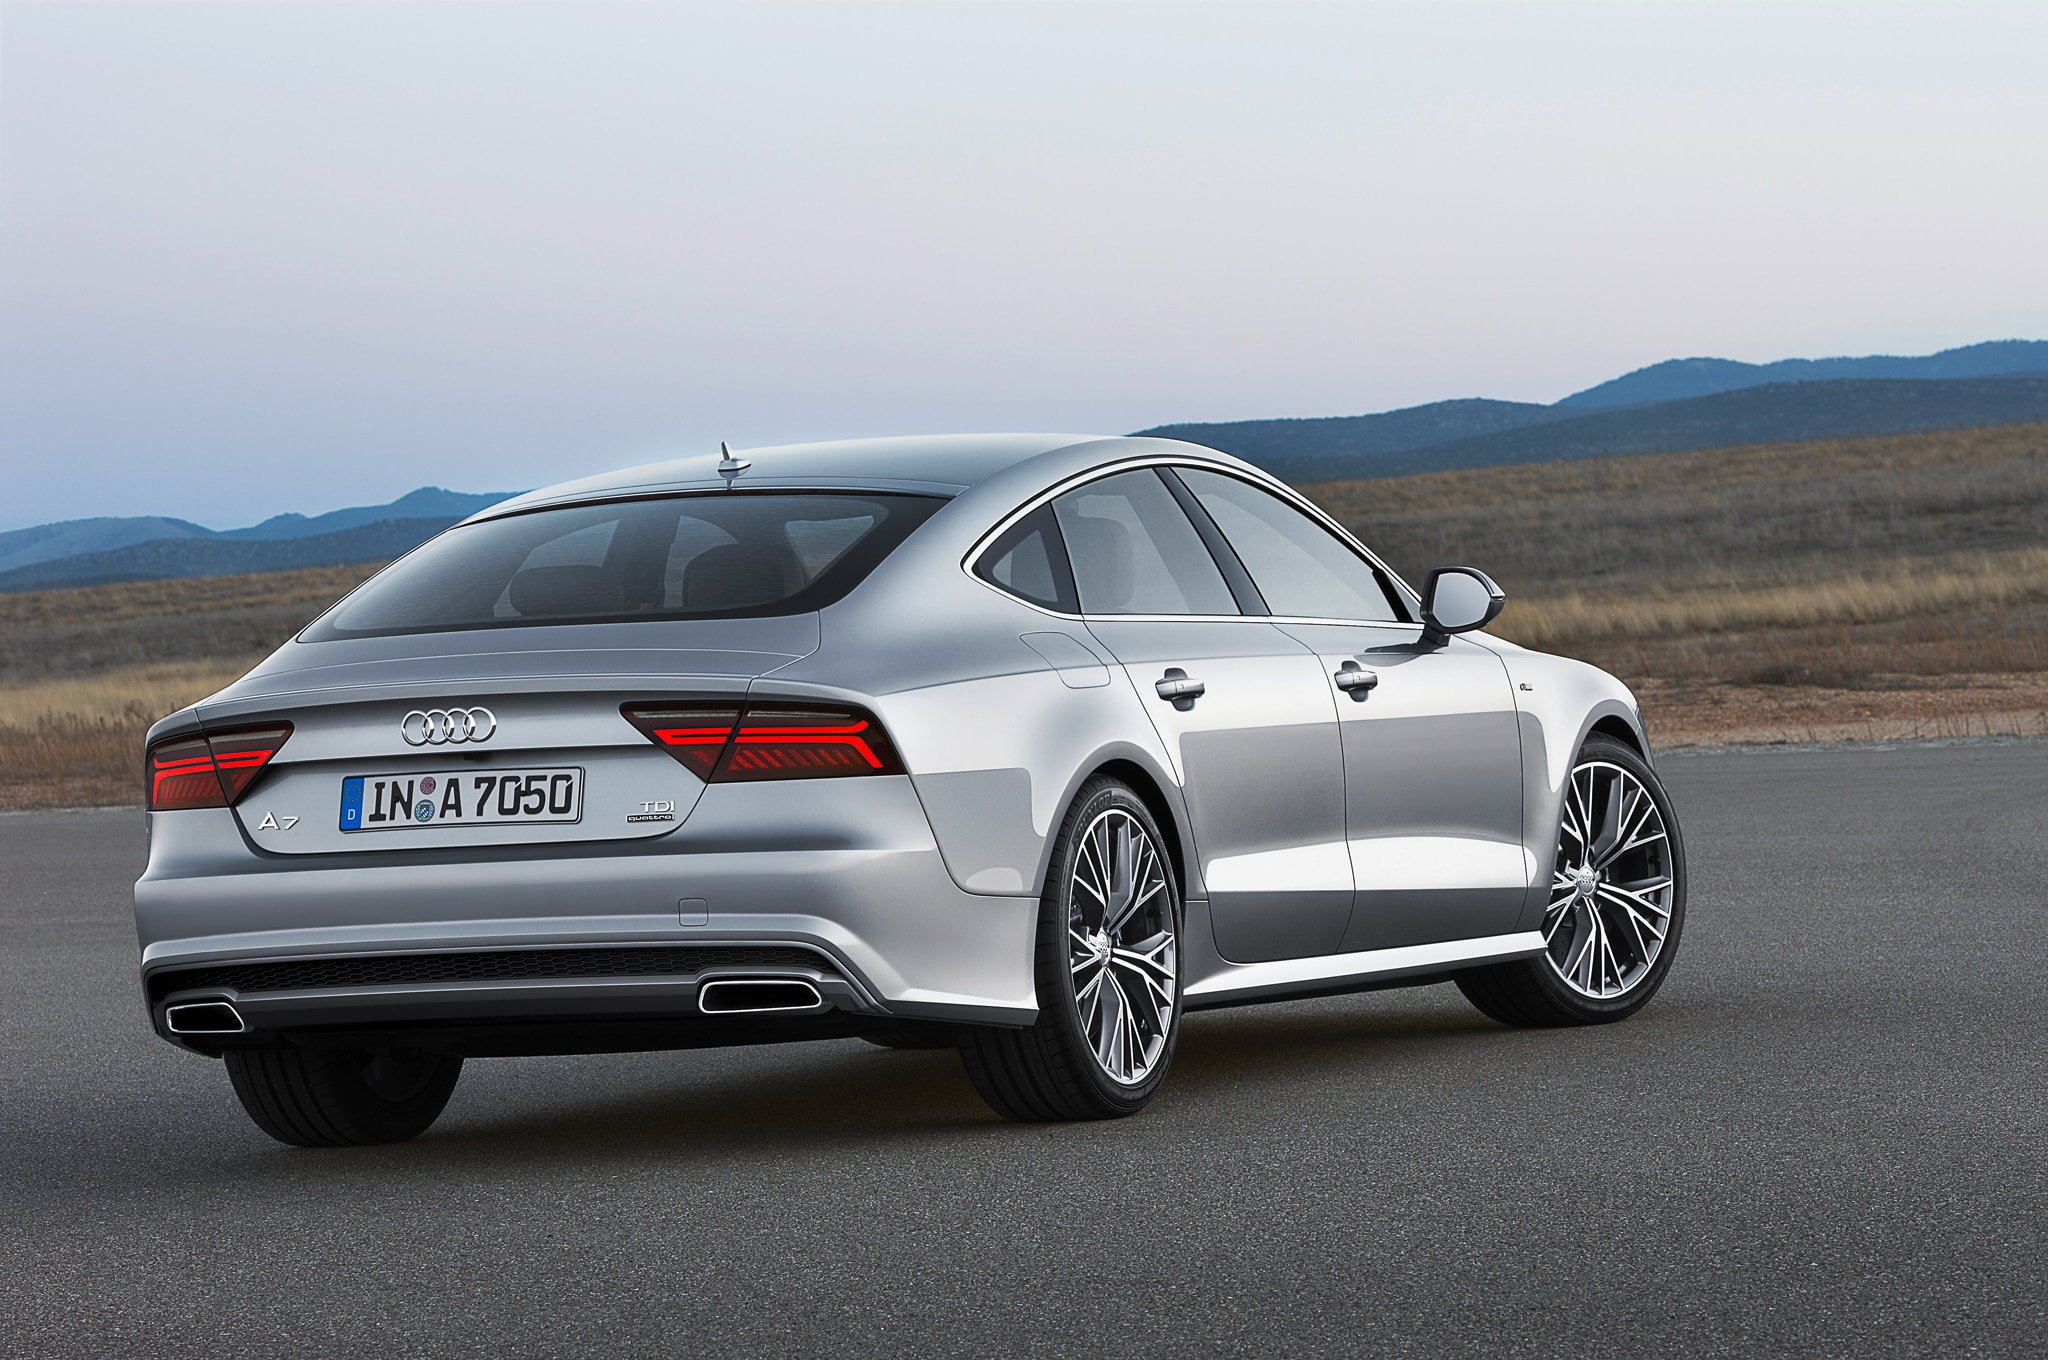 facelifted 2015 audi a7 revealed for europe automobile magazine. Black Bedroom Furniture Sets. Home Design Ideas